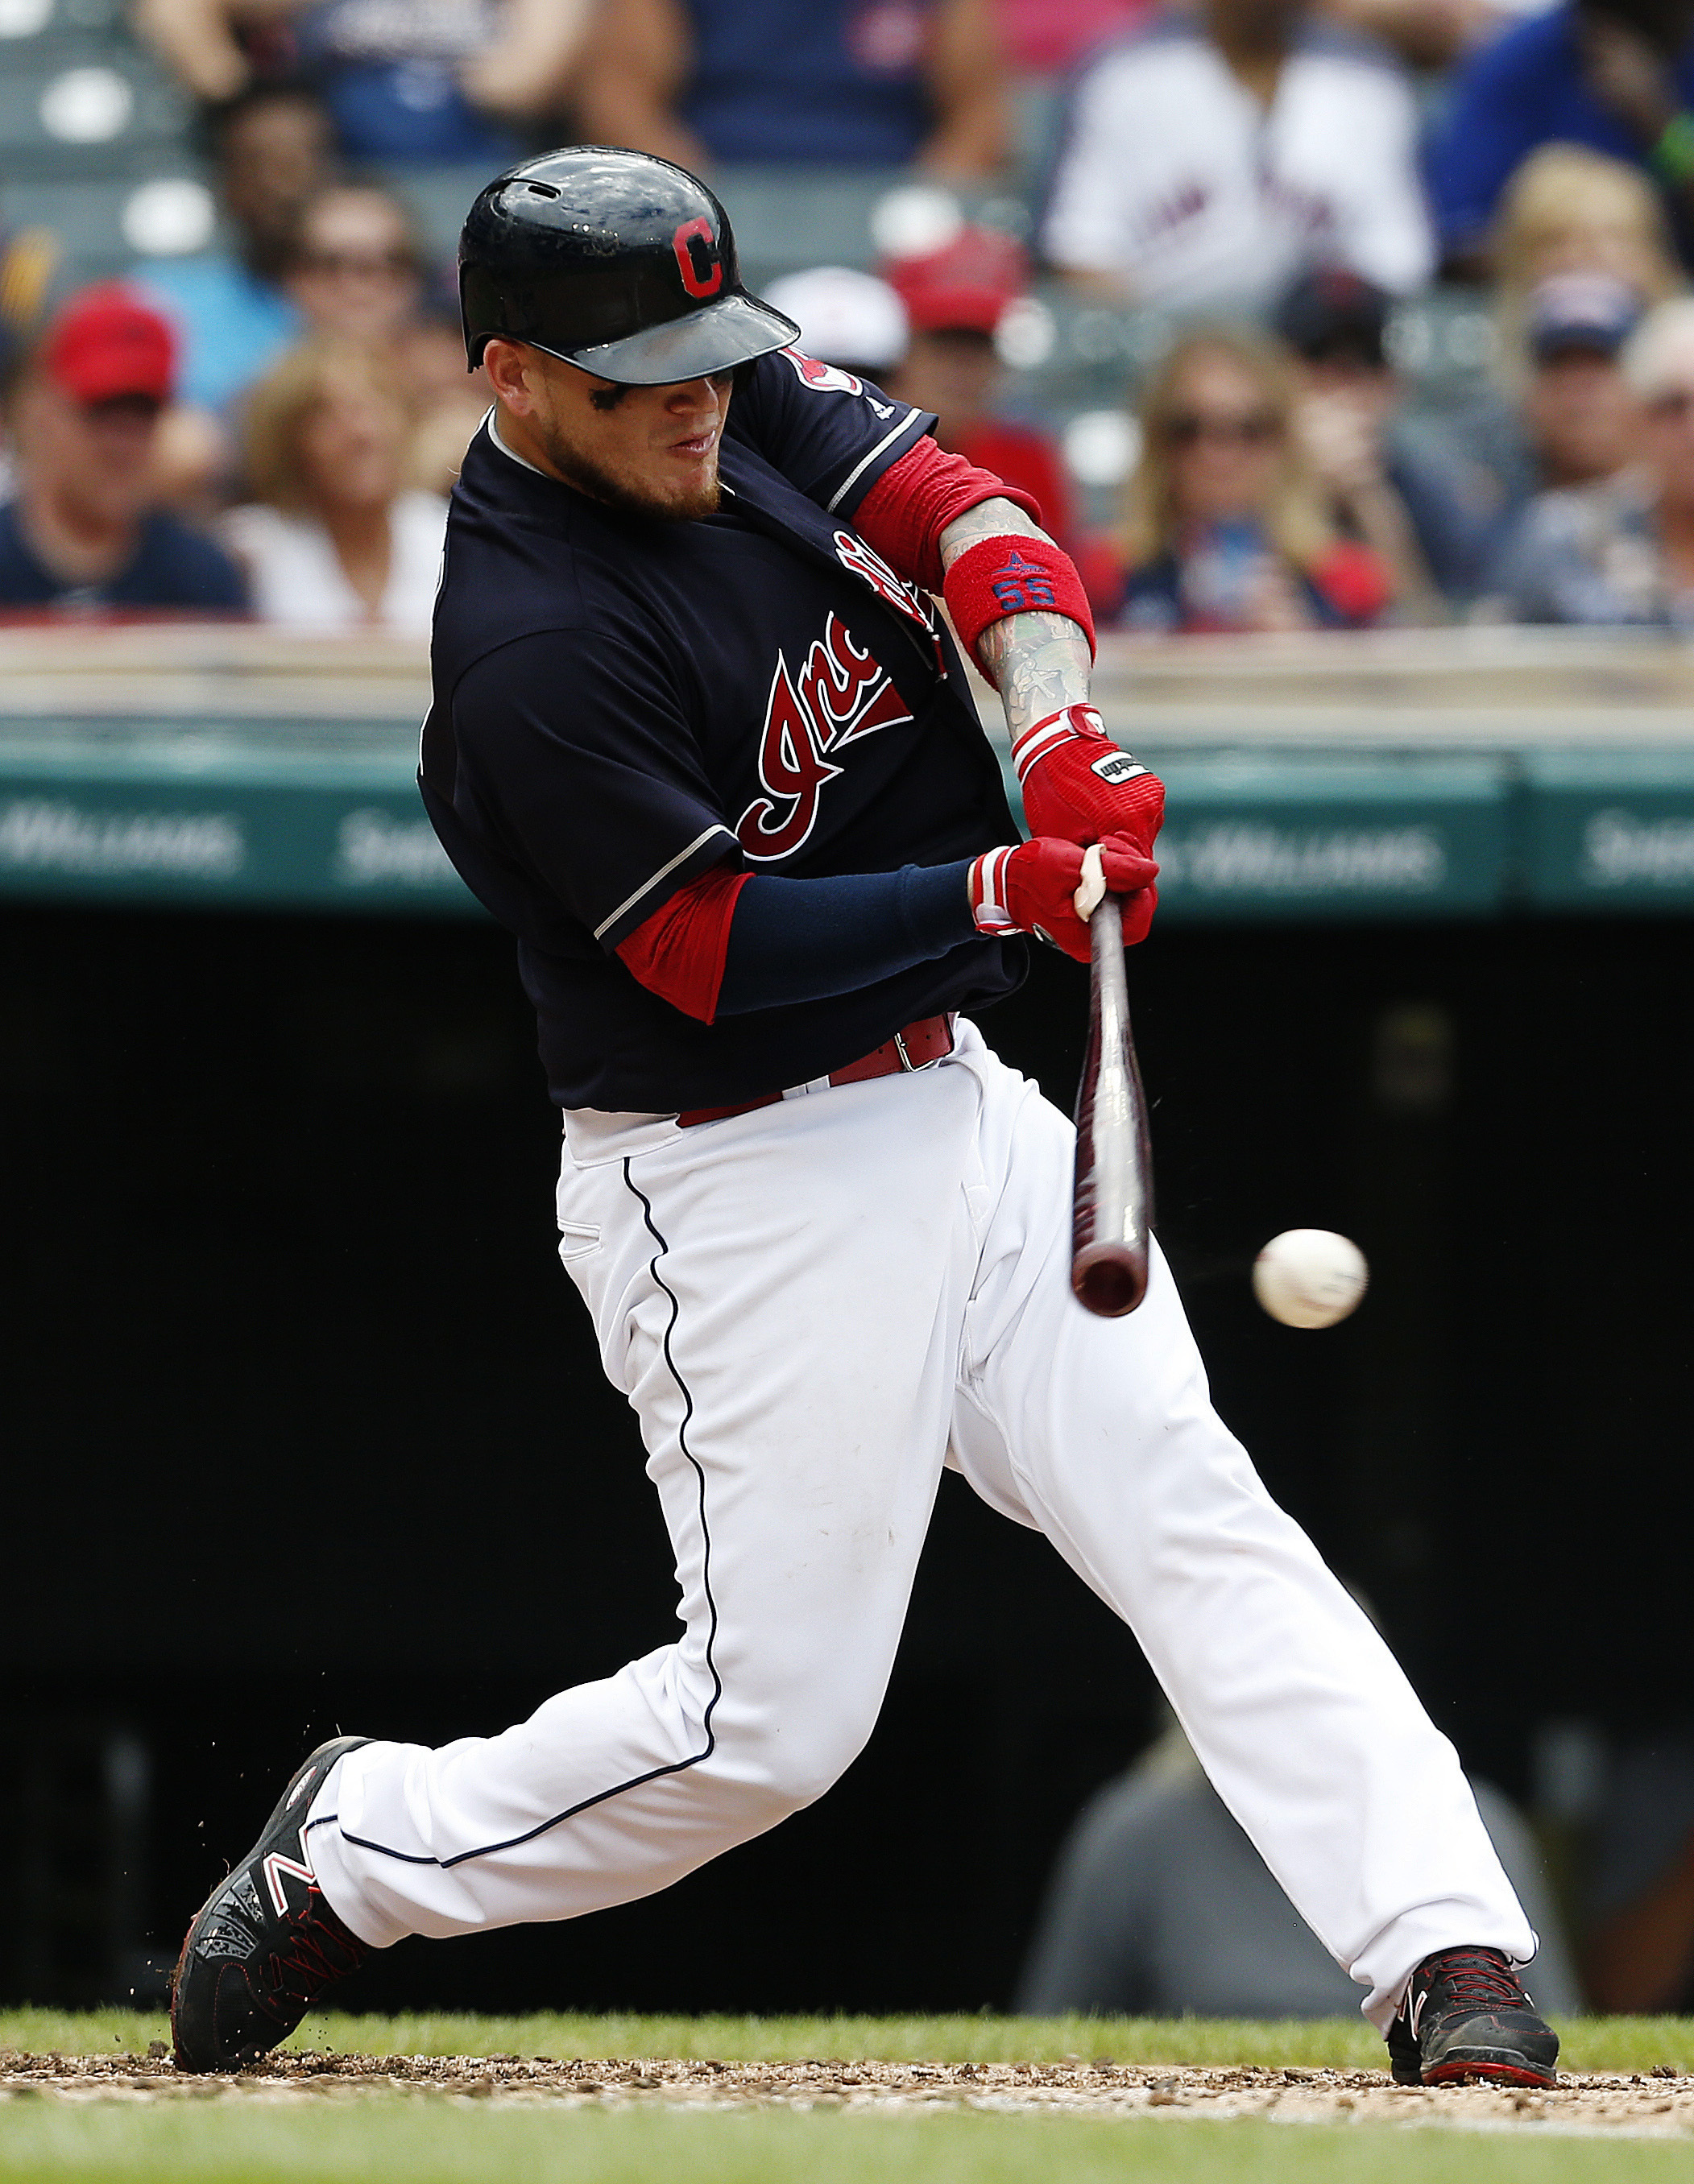 Cleveland Indians' Roberto Perez hits an RBI-single off Oakland Athletics starting pitcher Sonny Gray during the fourth inning of a baseball game Sunday, July 31, 2016, in Cleveland. (AP Photo/Ron Schwane)